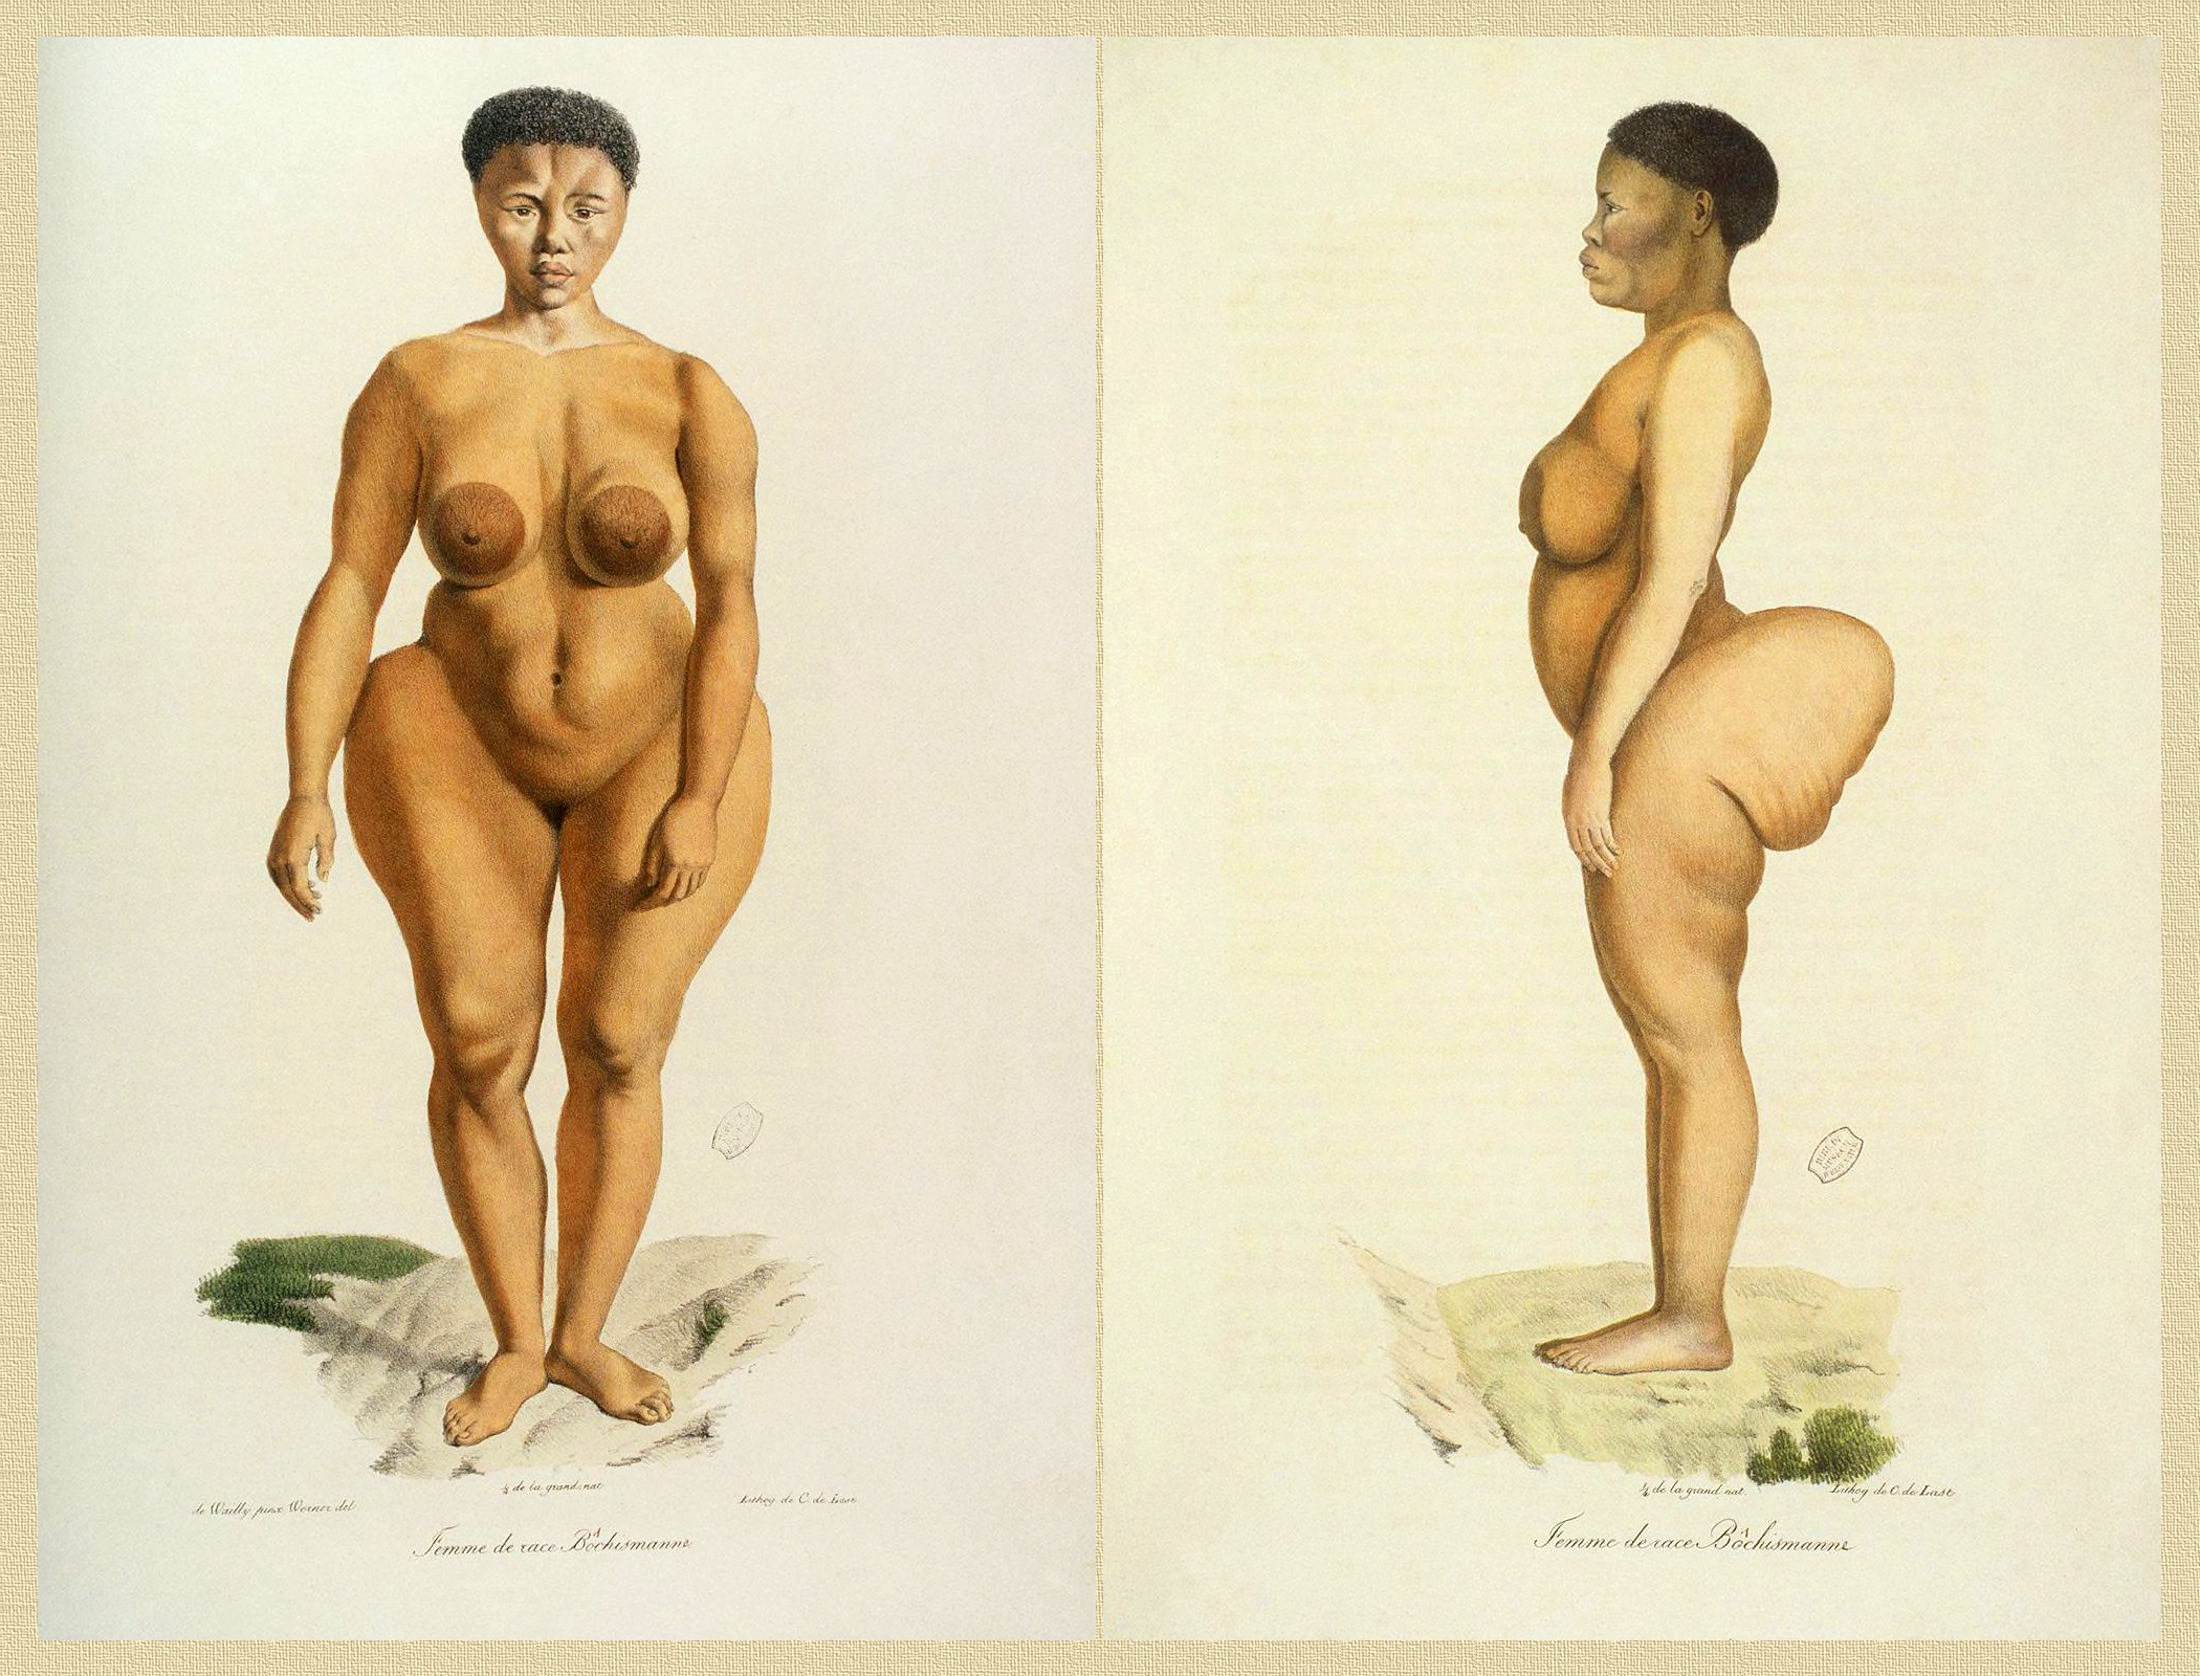 "Sawtche, named Sarah ""Saartjie"" Baartman in Europe (ca.1790 - 1815), called the Hottentot Venus, captured in South Africa, exhibited in Europe as a freak show attraction, forced into prostitution, studied as a specimen of ""Woman of race Bôchismann"" in 1815 by Étienne Geoffroy Saint-Hilaire and Georges Cuvier, which deduced theories on the inferiority of some human races. [Image and caption courtesy of Wikimedia]"